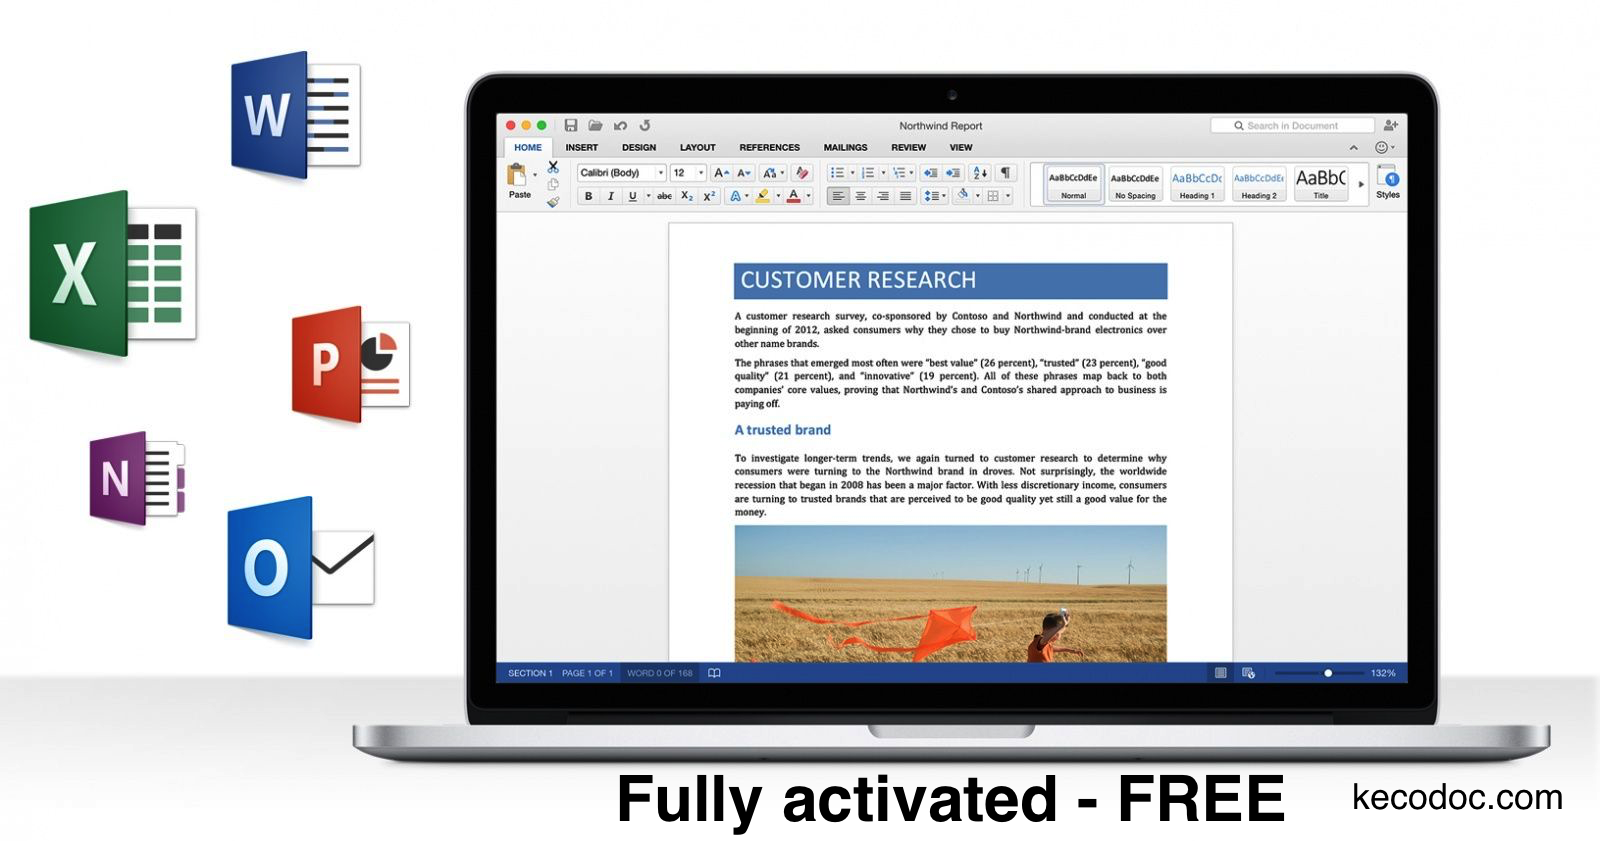 Download office 365 crack mac | Microsoft Office 365 Activation Key